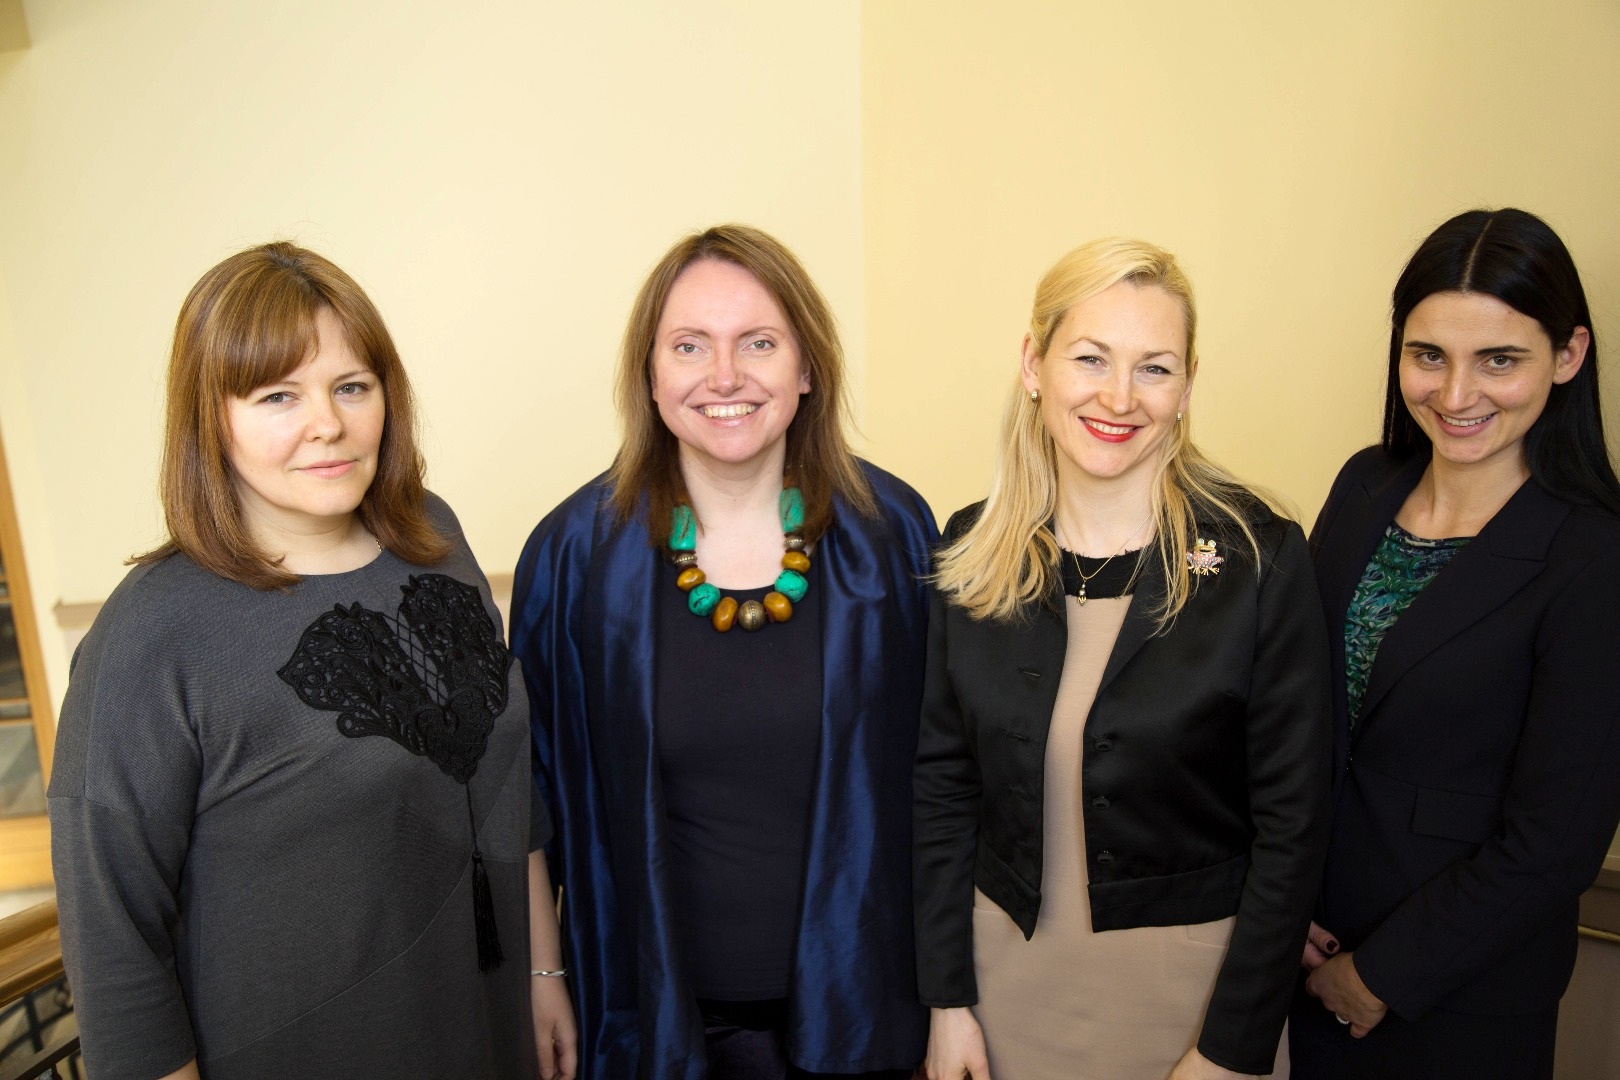 02.01.2017. In 2017, a new structural unit has commenced its work at the Supreme Court – Secretariat of the Council for the Judiciary. Its basic function is ensuring the operation of the Council for the Judiciary. (On photo from left): Consultant Irina Casa, Head of the Secretariat Sovita Harbacevica, Adviser Dace Sulmane and Legal adviser Linda Kalnina.